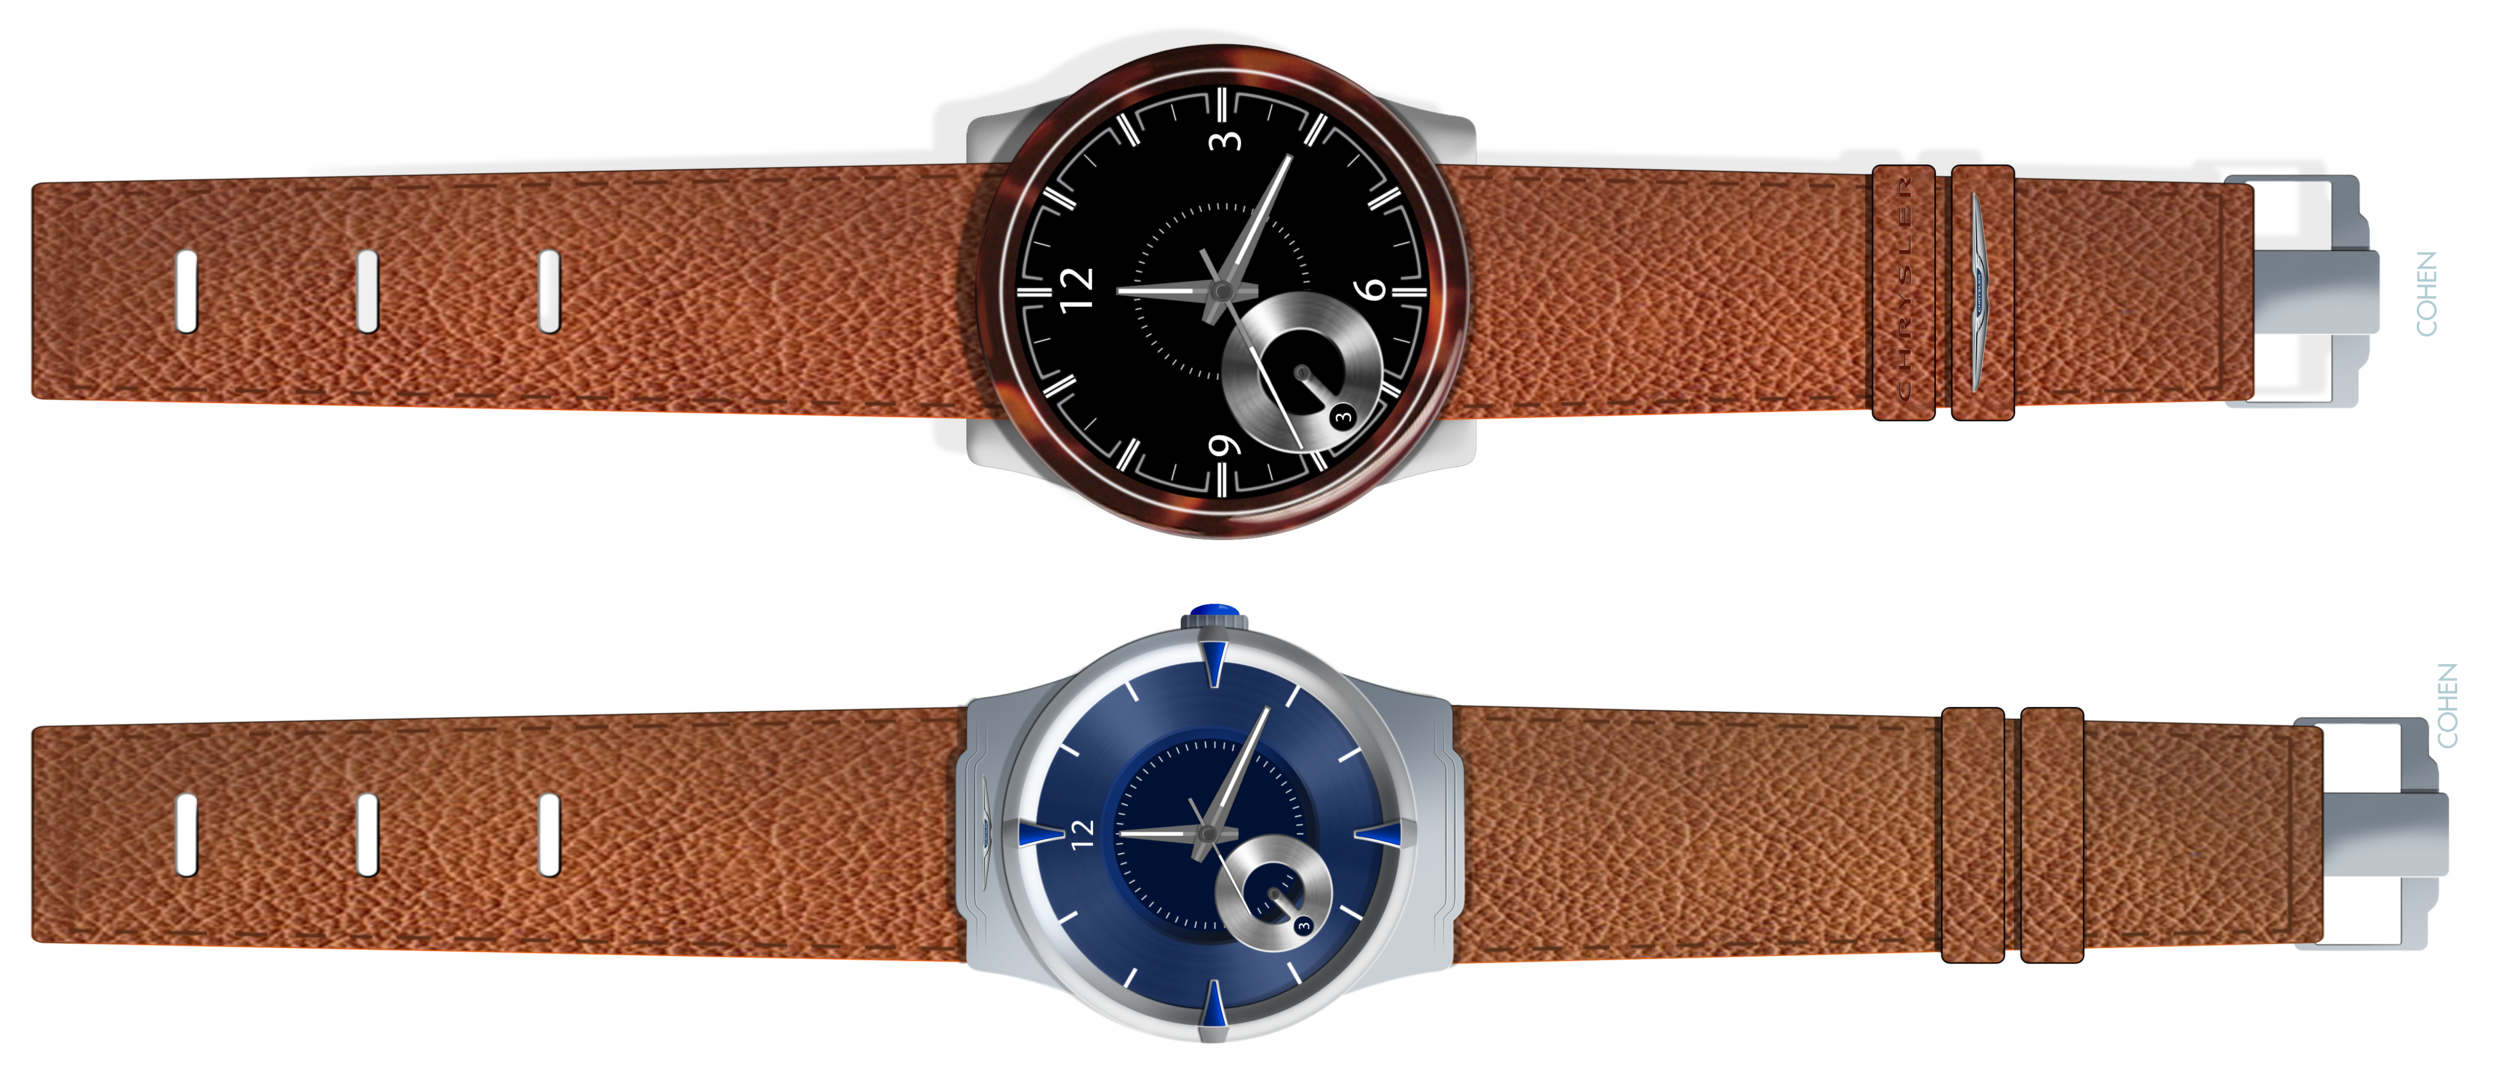 Chrysler banded watch proposals